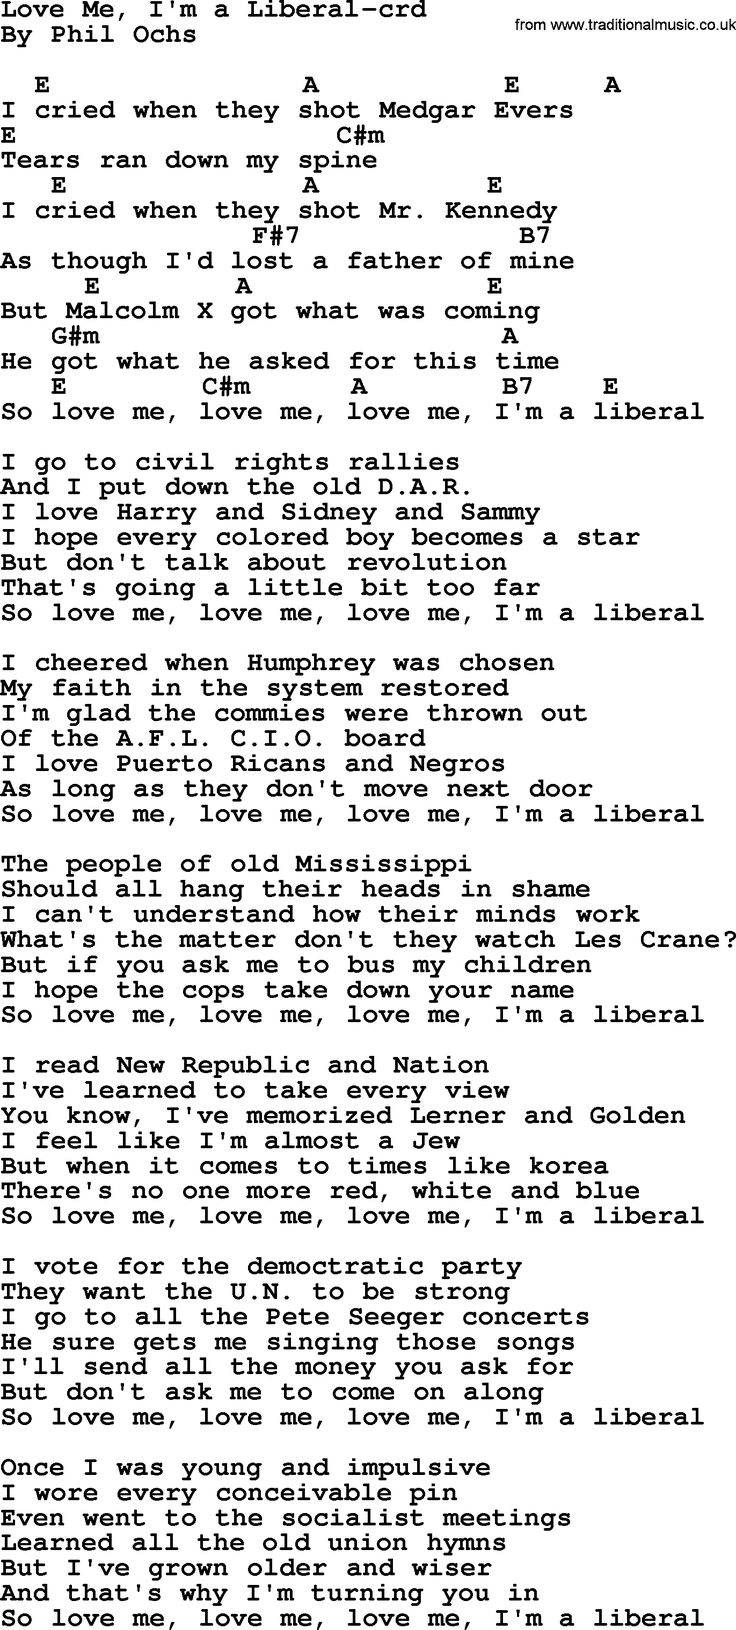 99 best phil ochs chords images on pinterest pdf lyrics and phil ochs songs love me im a liberal lyrics chords and pdf for printing hexwebz Gallery